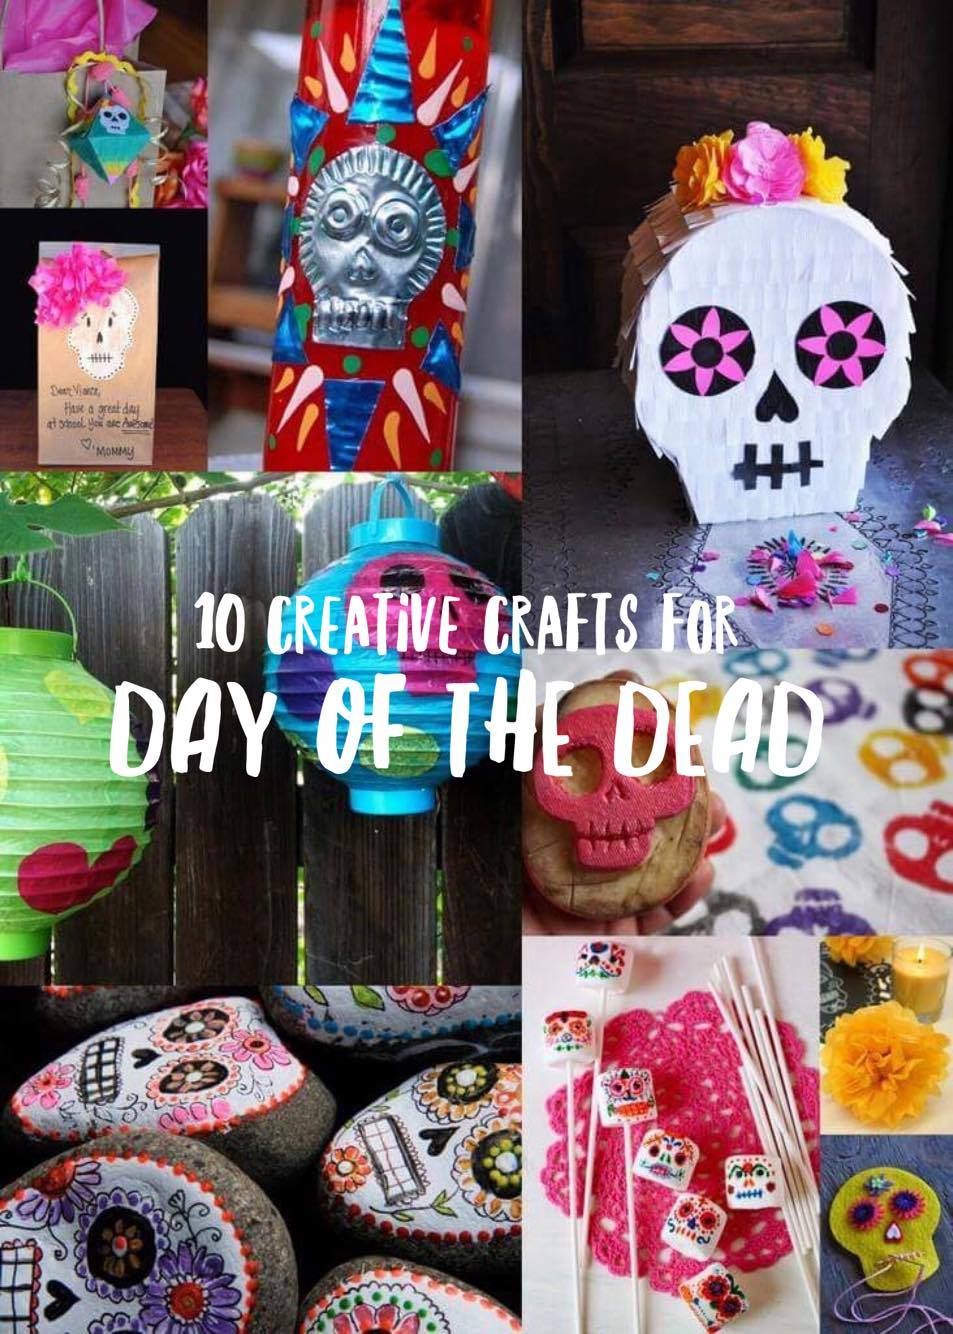 Creative Crafts for Day of the Dead | Lola's Cocina | www.lolascocina.com